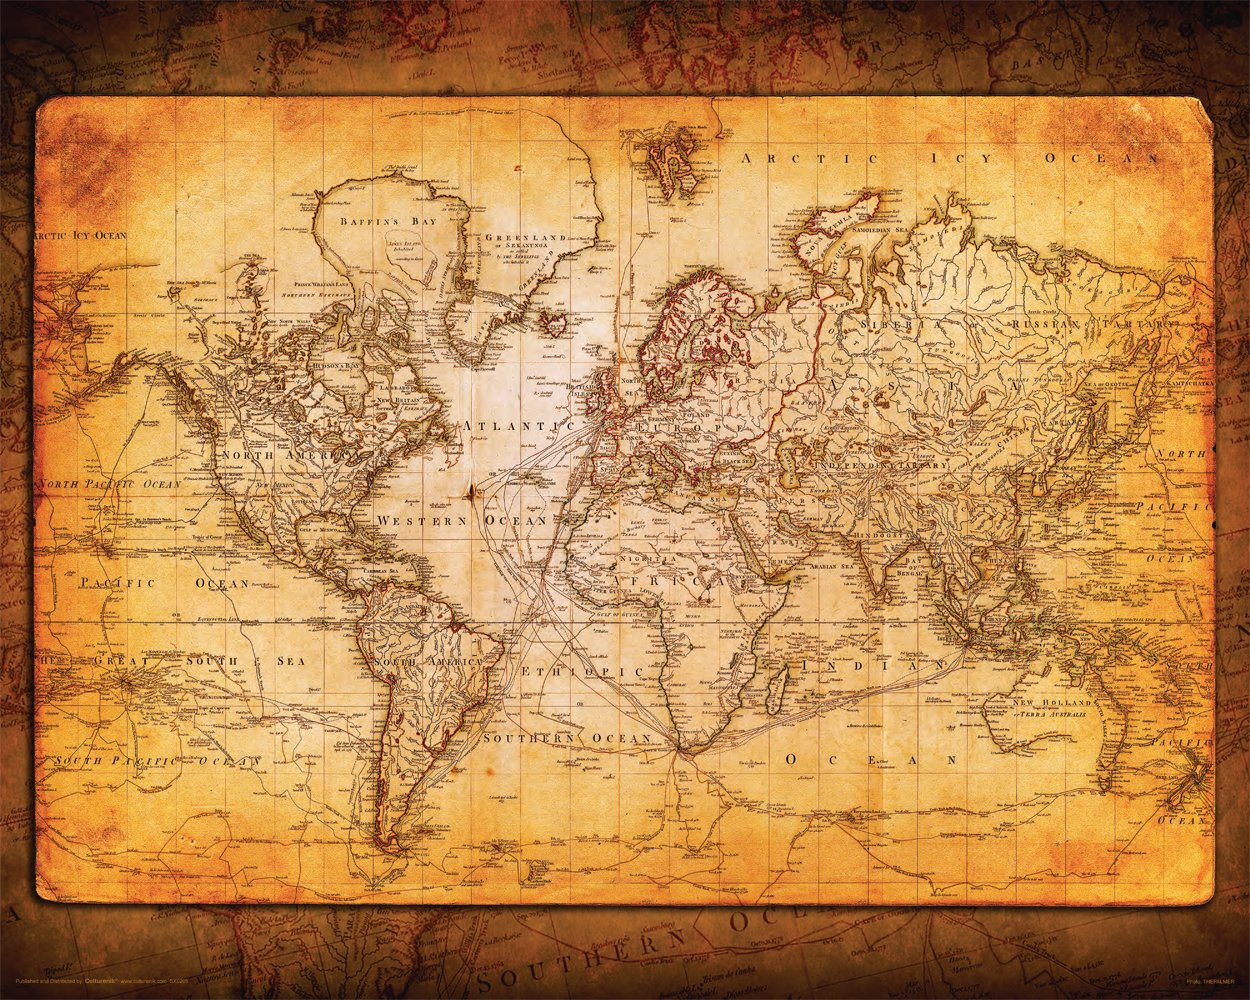 Culturenik World Map Antique Vintage Old Style Decorative Educational Classroom Poster Print 3